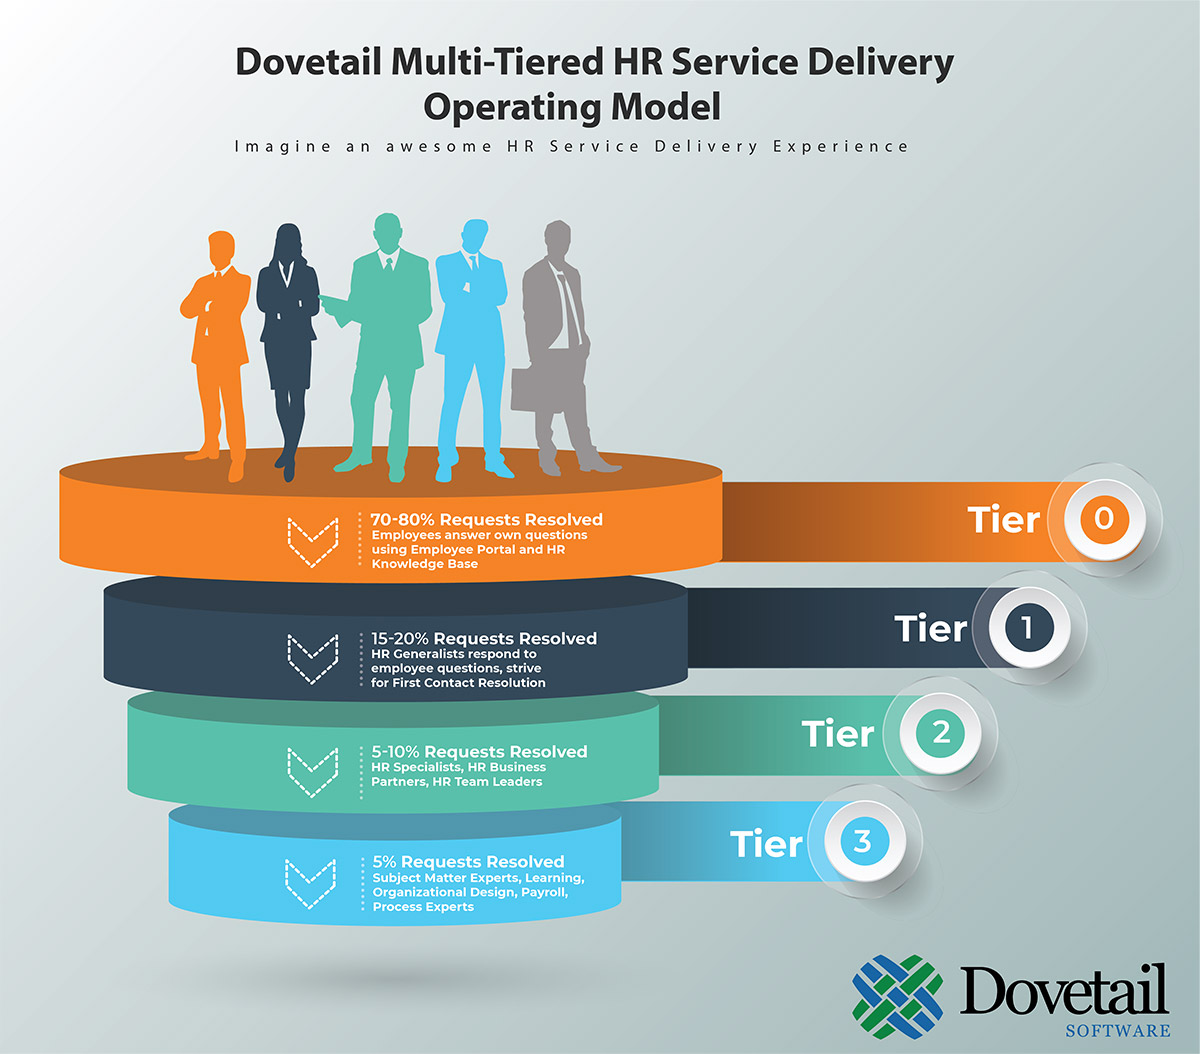 Dovetail Multi Tiered HR Service Delivery Operating Model